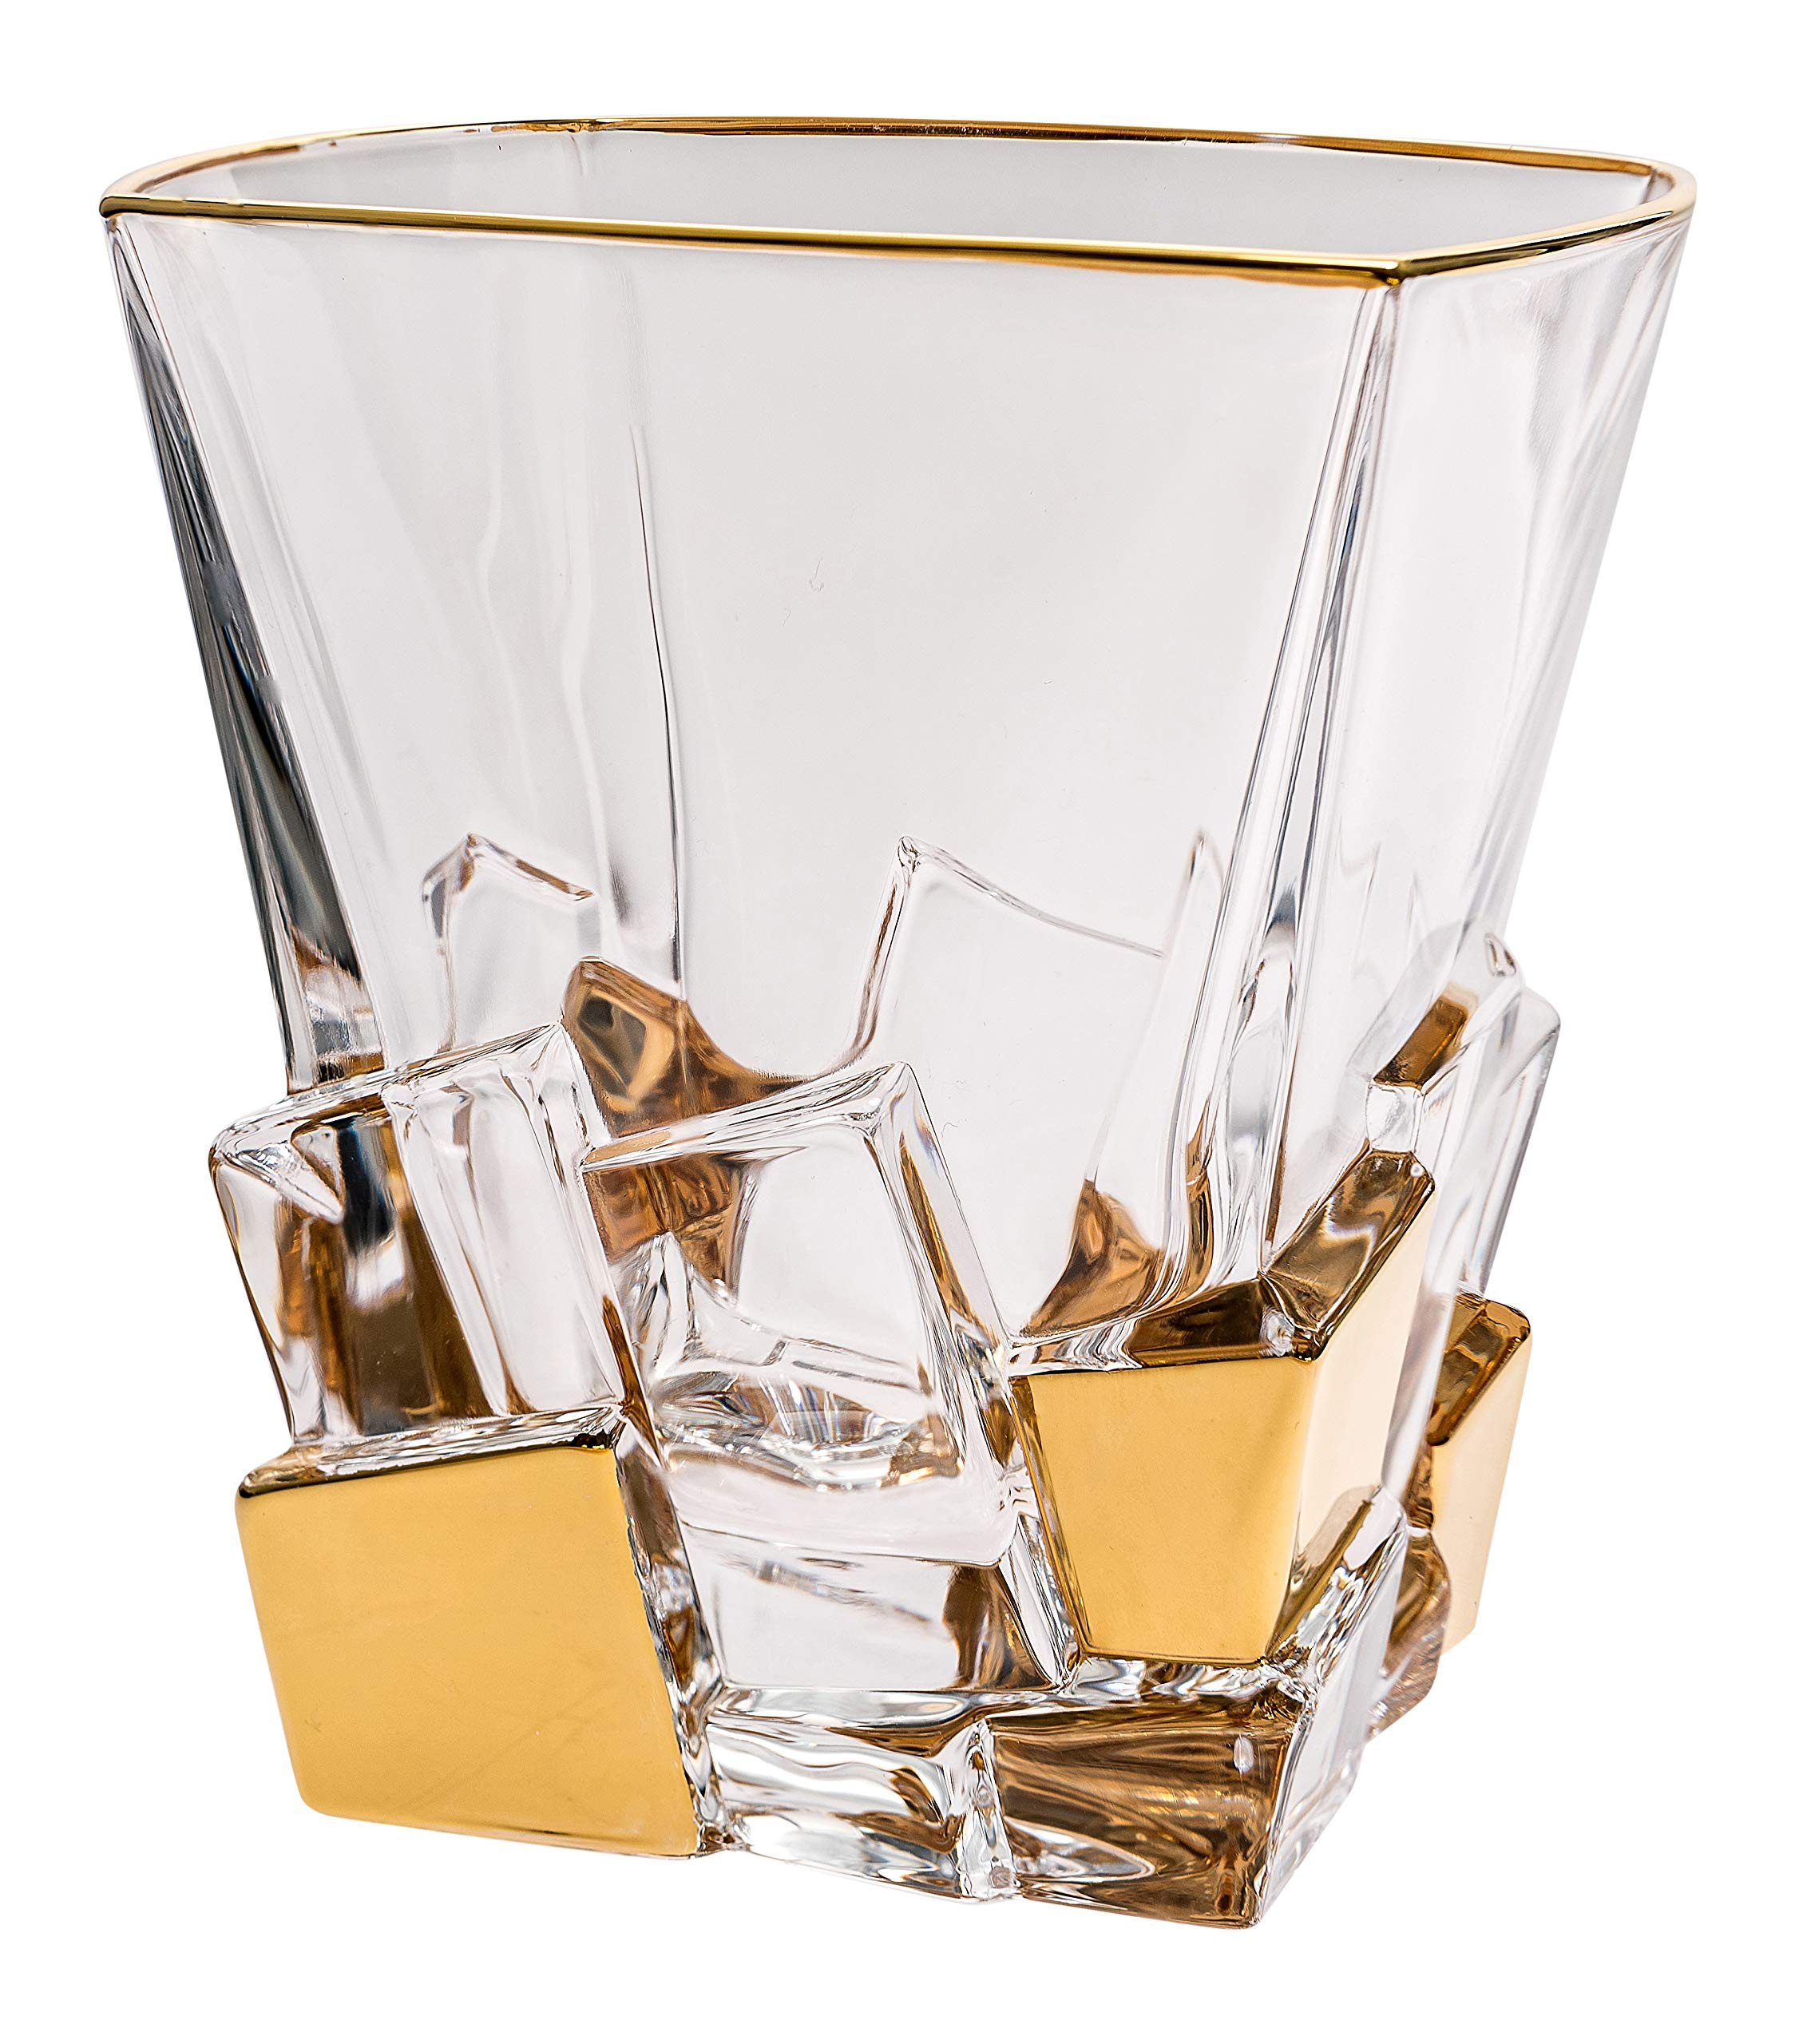 Barski - European Quality Glass - Crystal - Set of 6 - Square Shaped - Double Old Fashioned Tumblers - DOF - 11.7 oz. - with Gold Ice Cubes Design - Glasses are Made in Europe by Barski